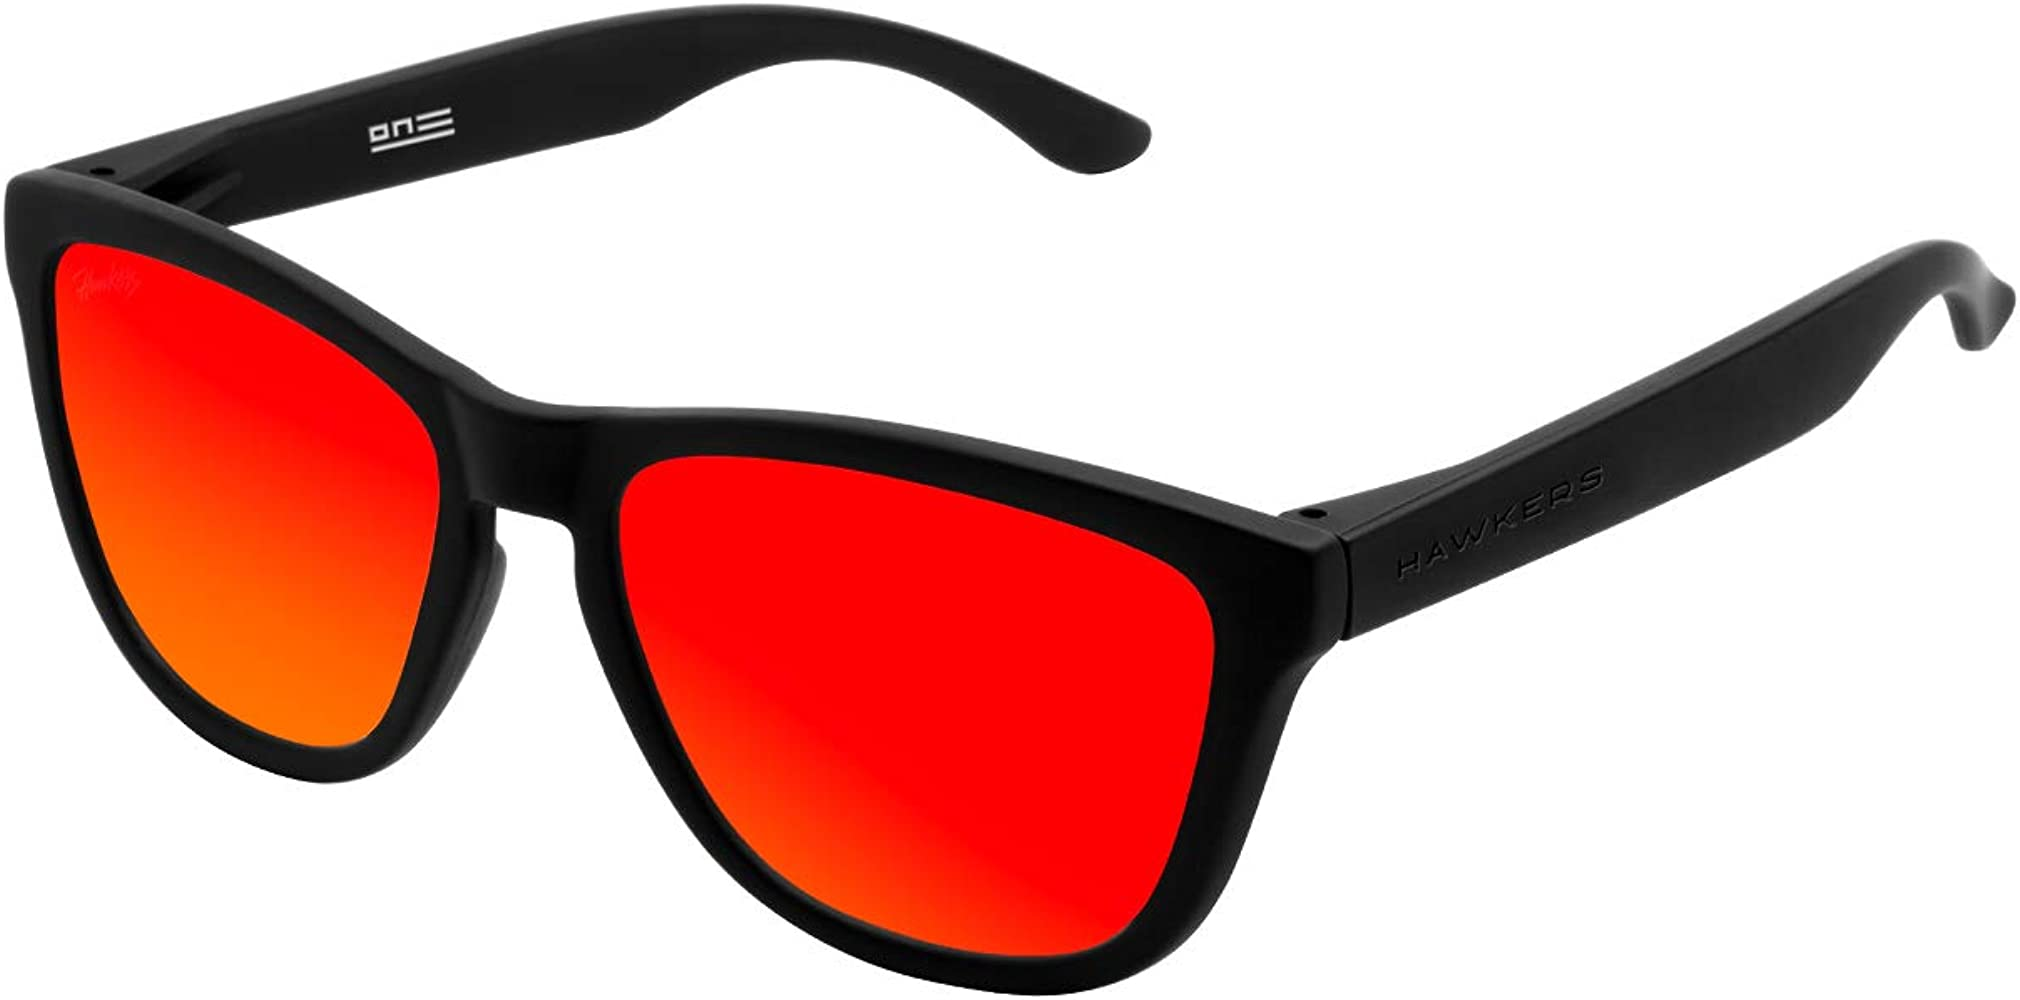 HAWKERS · ONE · Carbon Black · Ruby · Gafas de sol para hombre y ...